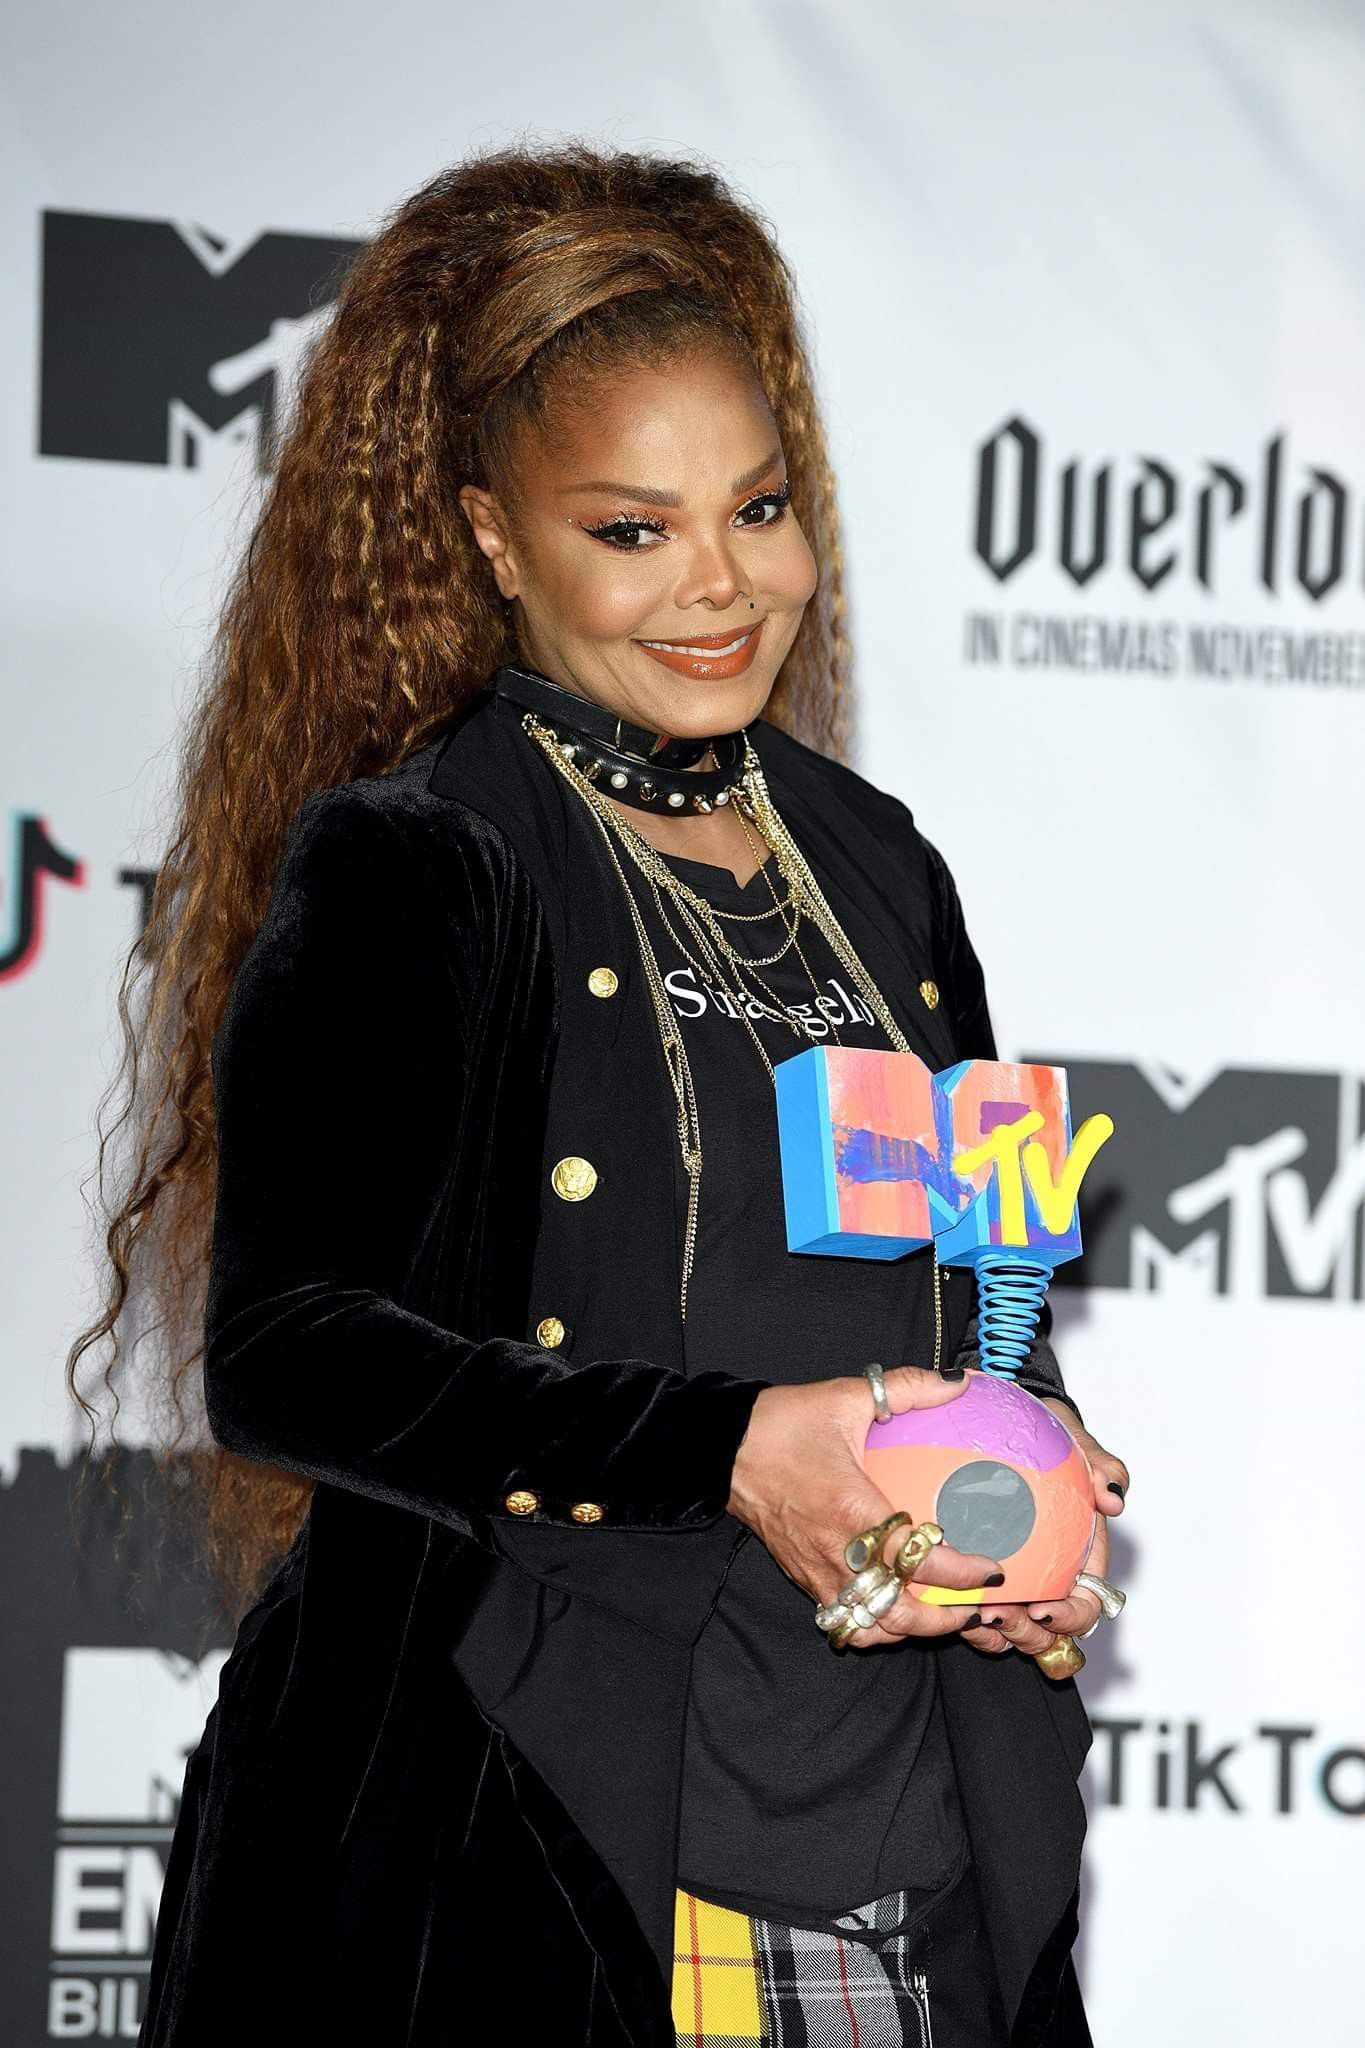 Queen Jackson with the Global Icon Award in the